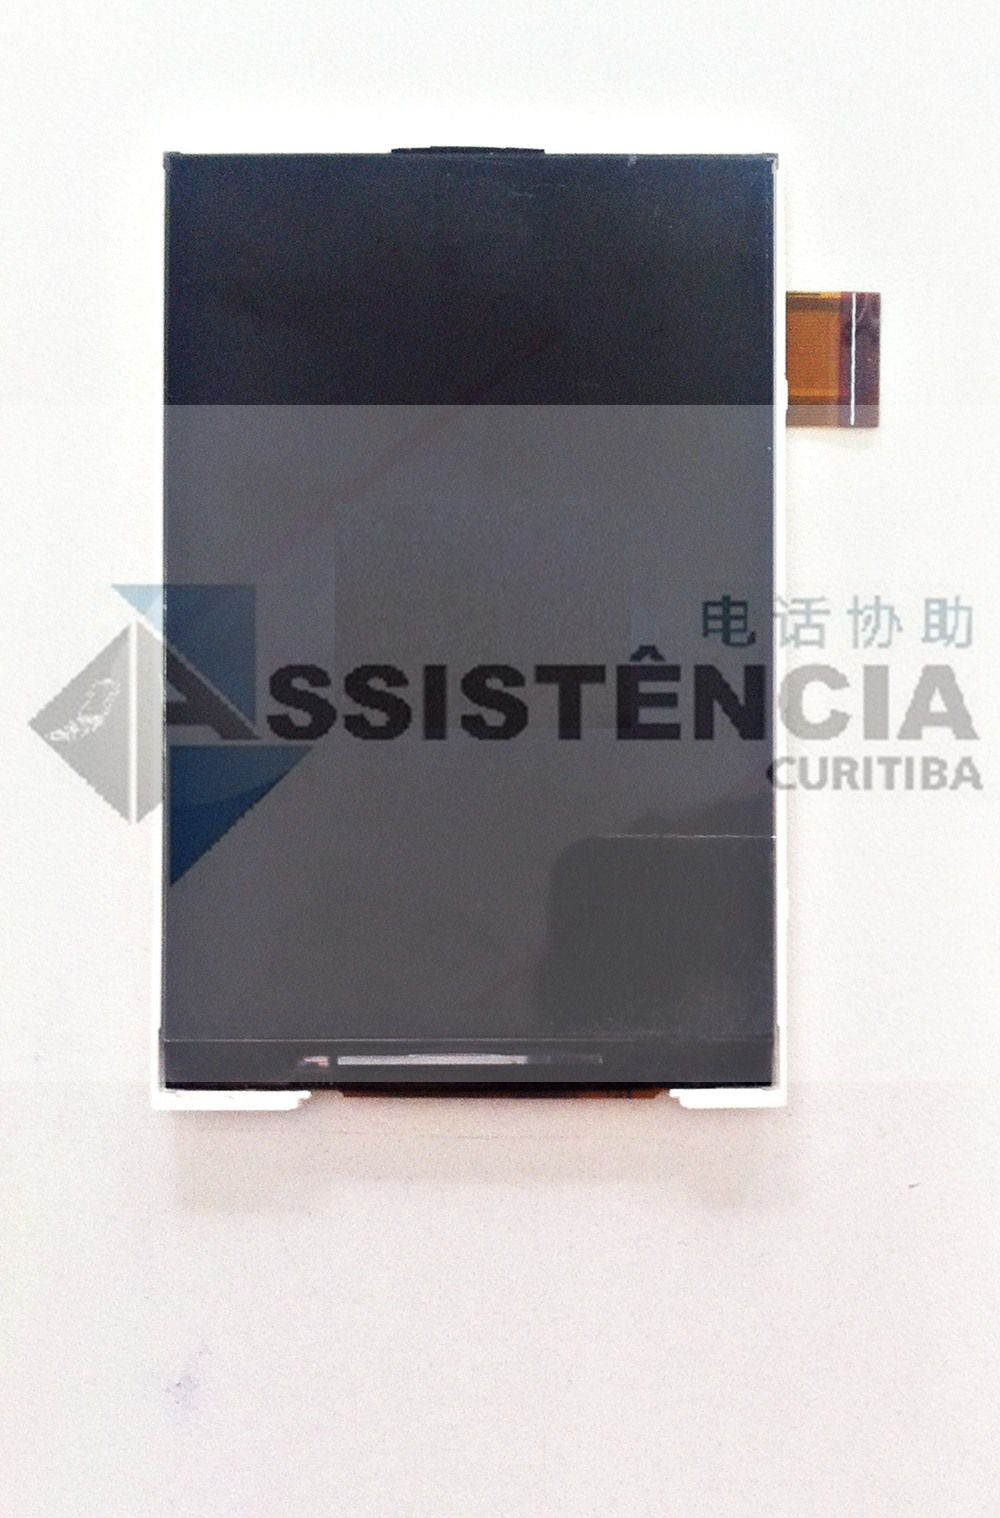 TELA DISPLAY LCD CELULAR MULTILASER ORION P3181 P3182